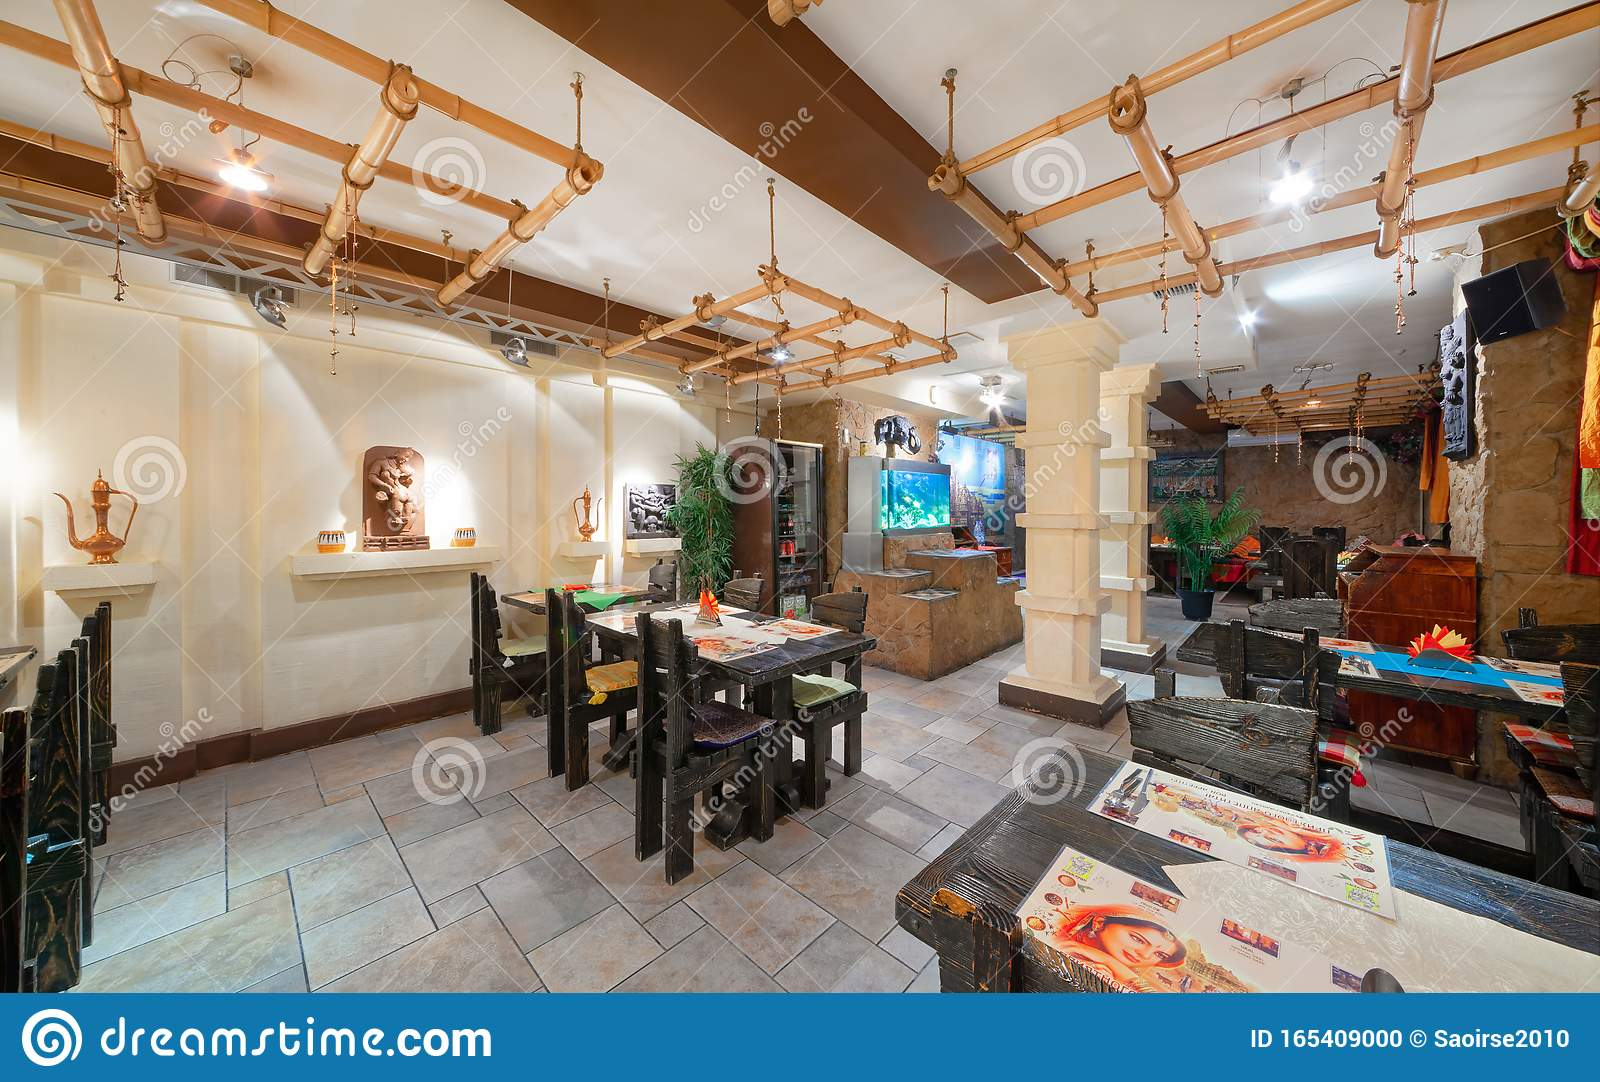 Moscow September 2014 Interior And Furnishings Of The Restaurant Of Indian Cuisine Editorial Image Image Of Atmospheric Moscow 165409000